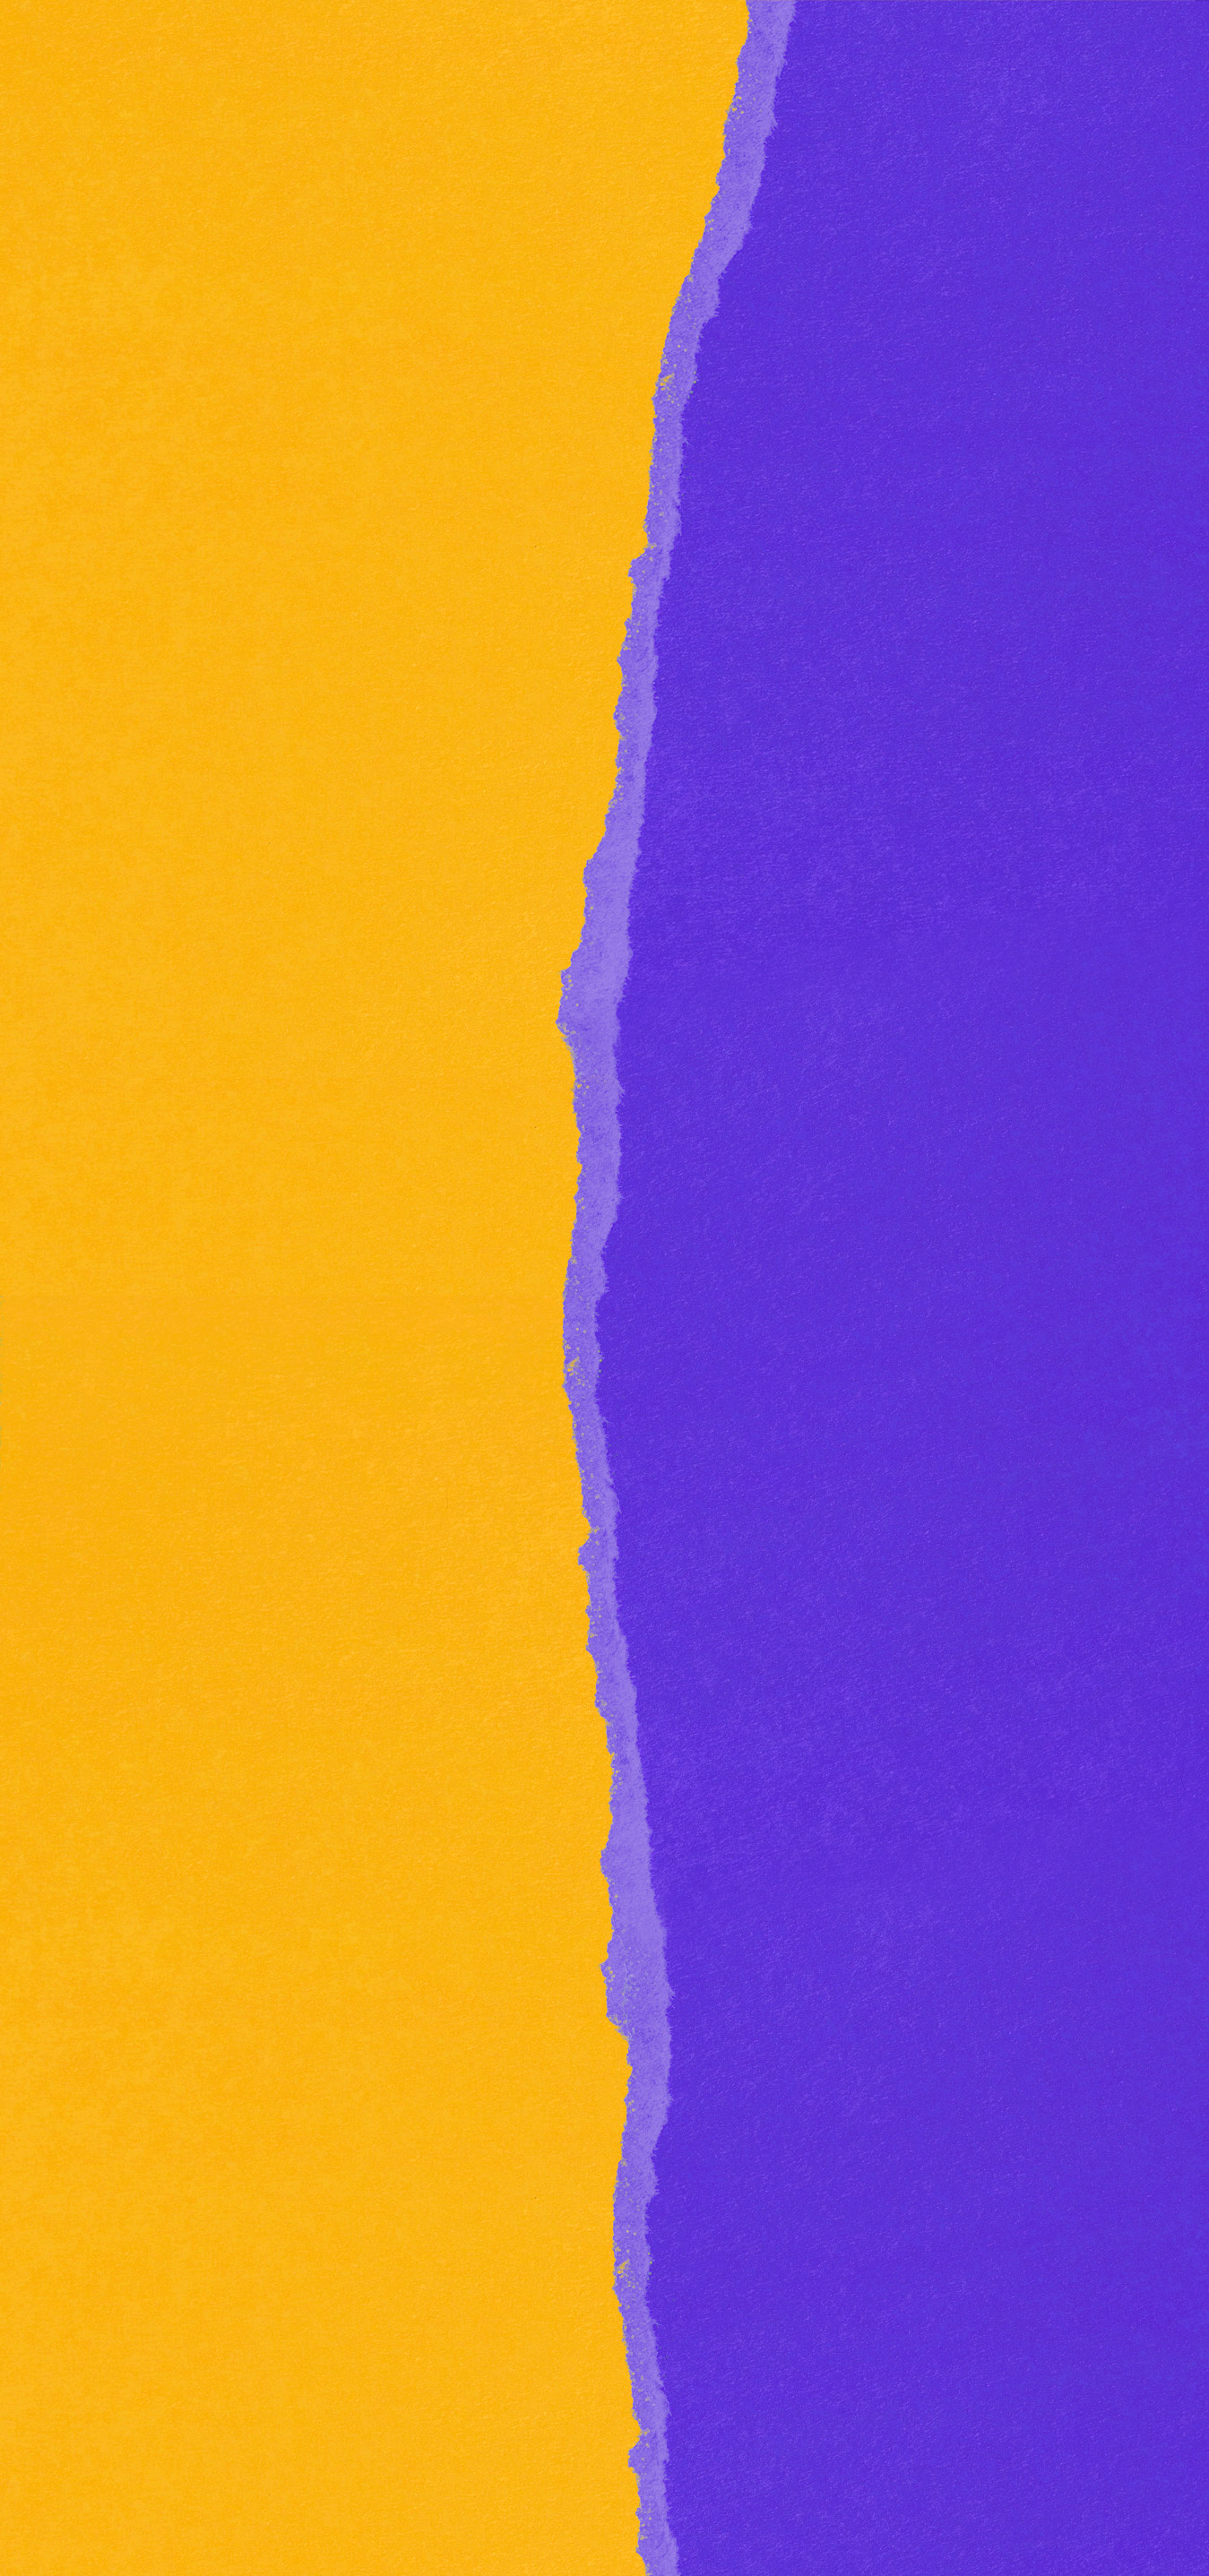 bg-paper-yellow-purple